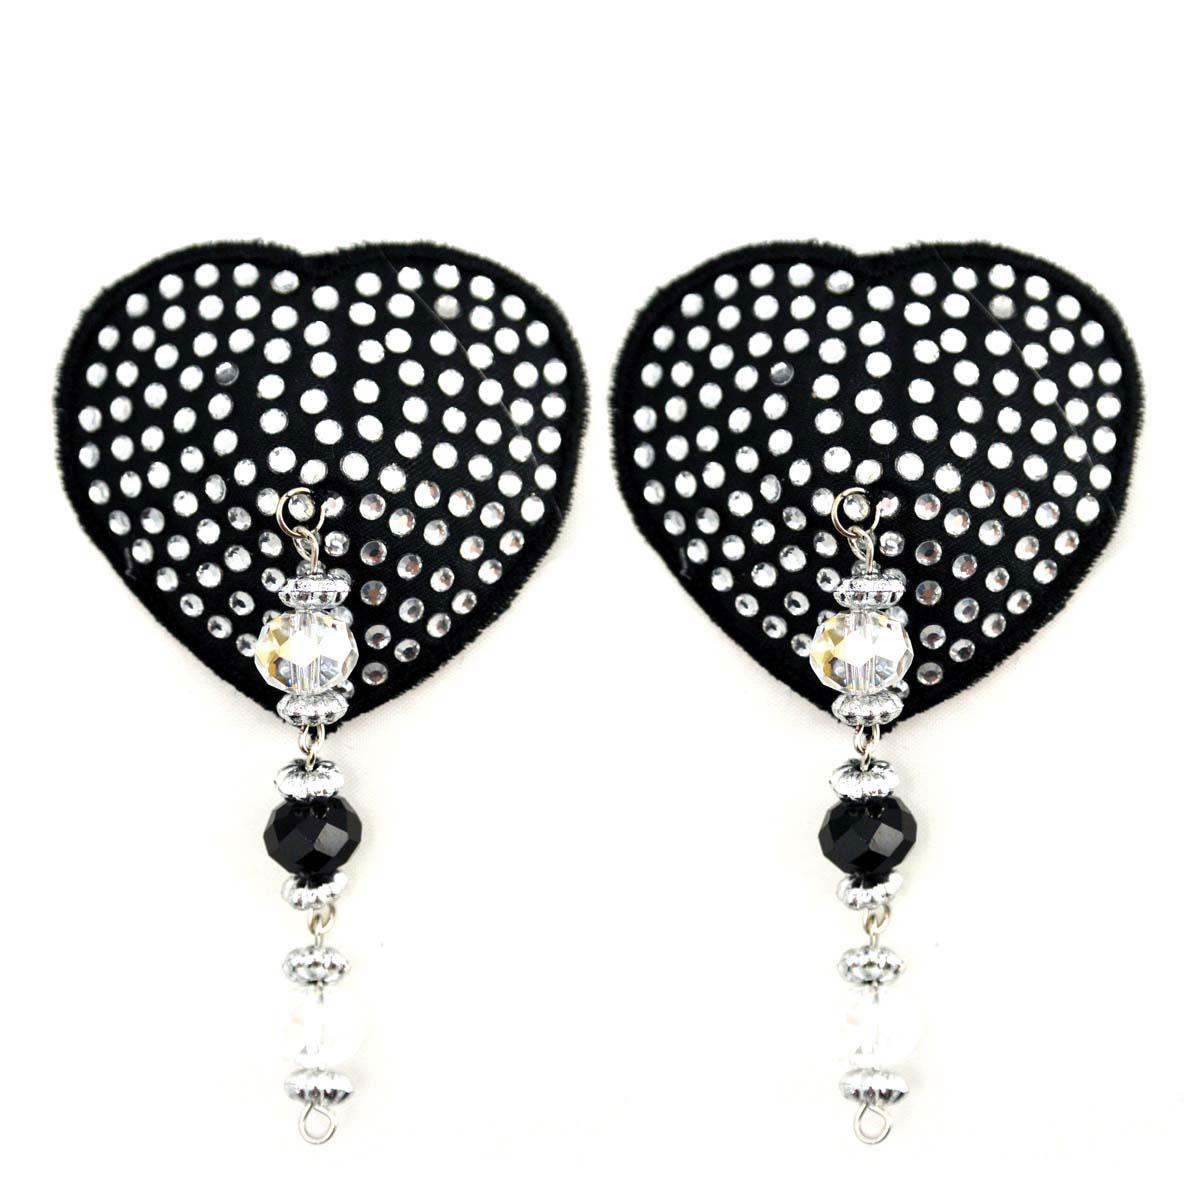 Bijoux de Nip Heart Black Crystal Pasties w- Beads